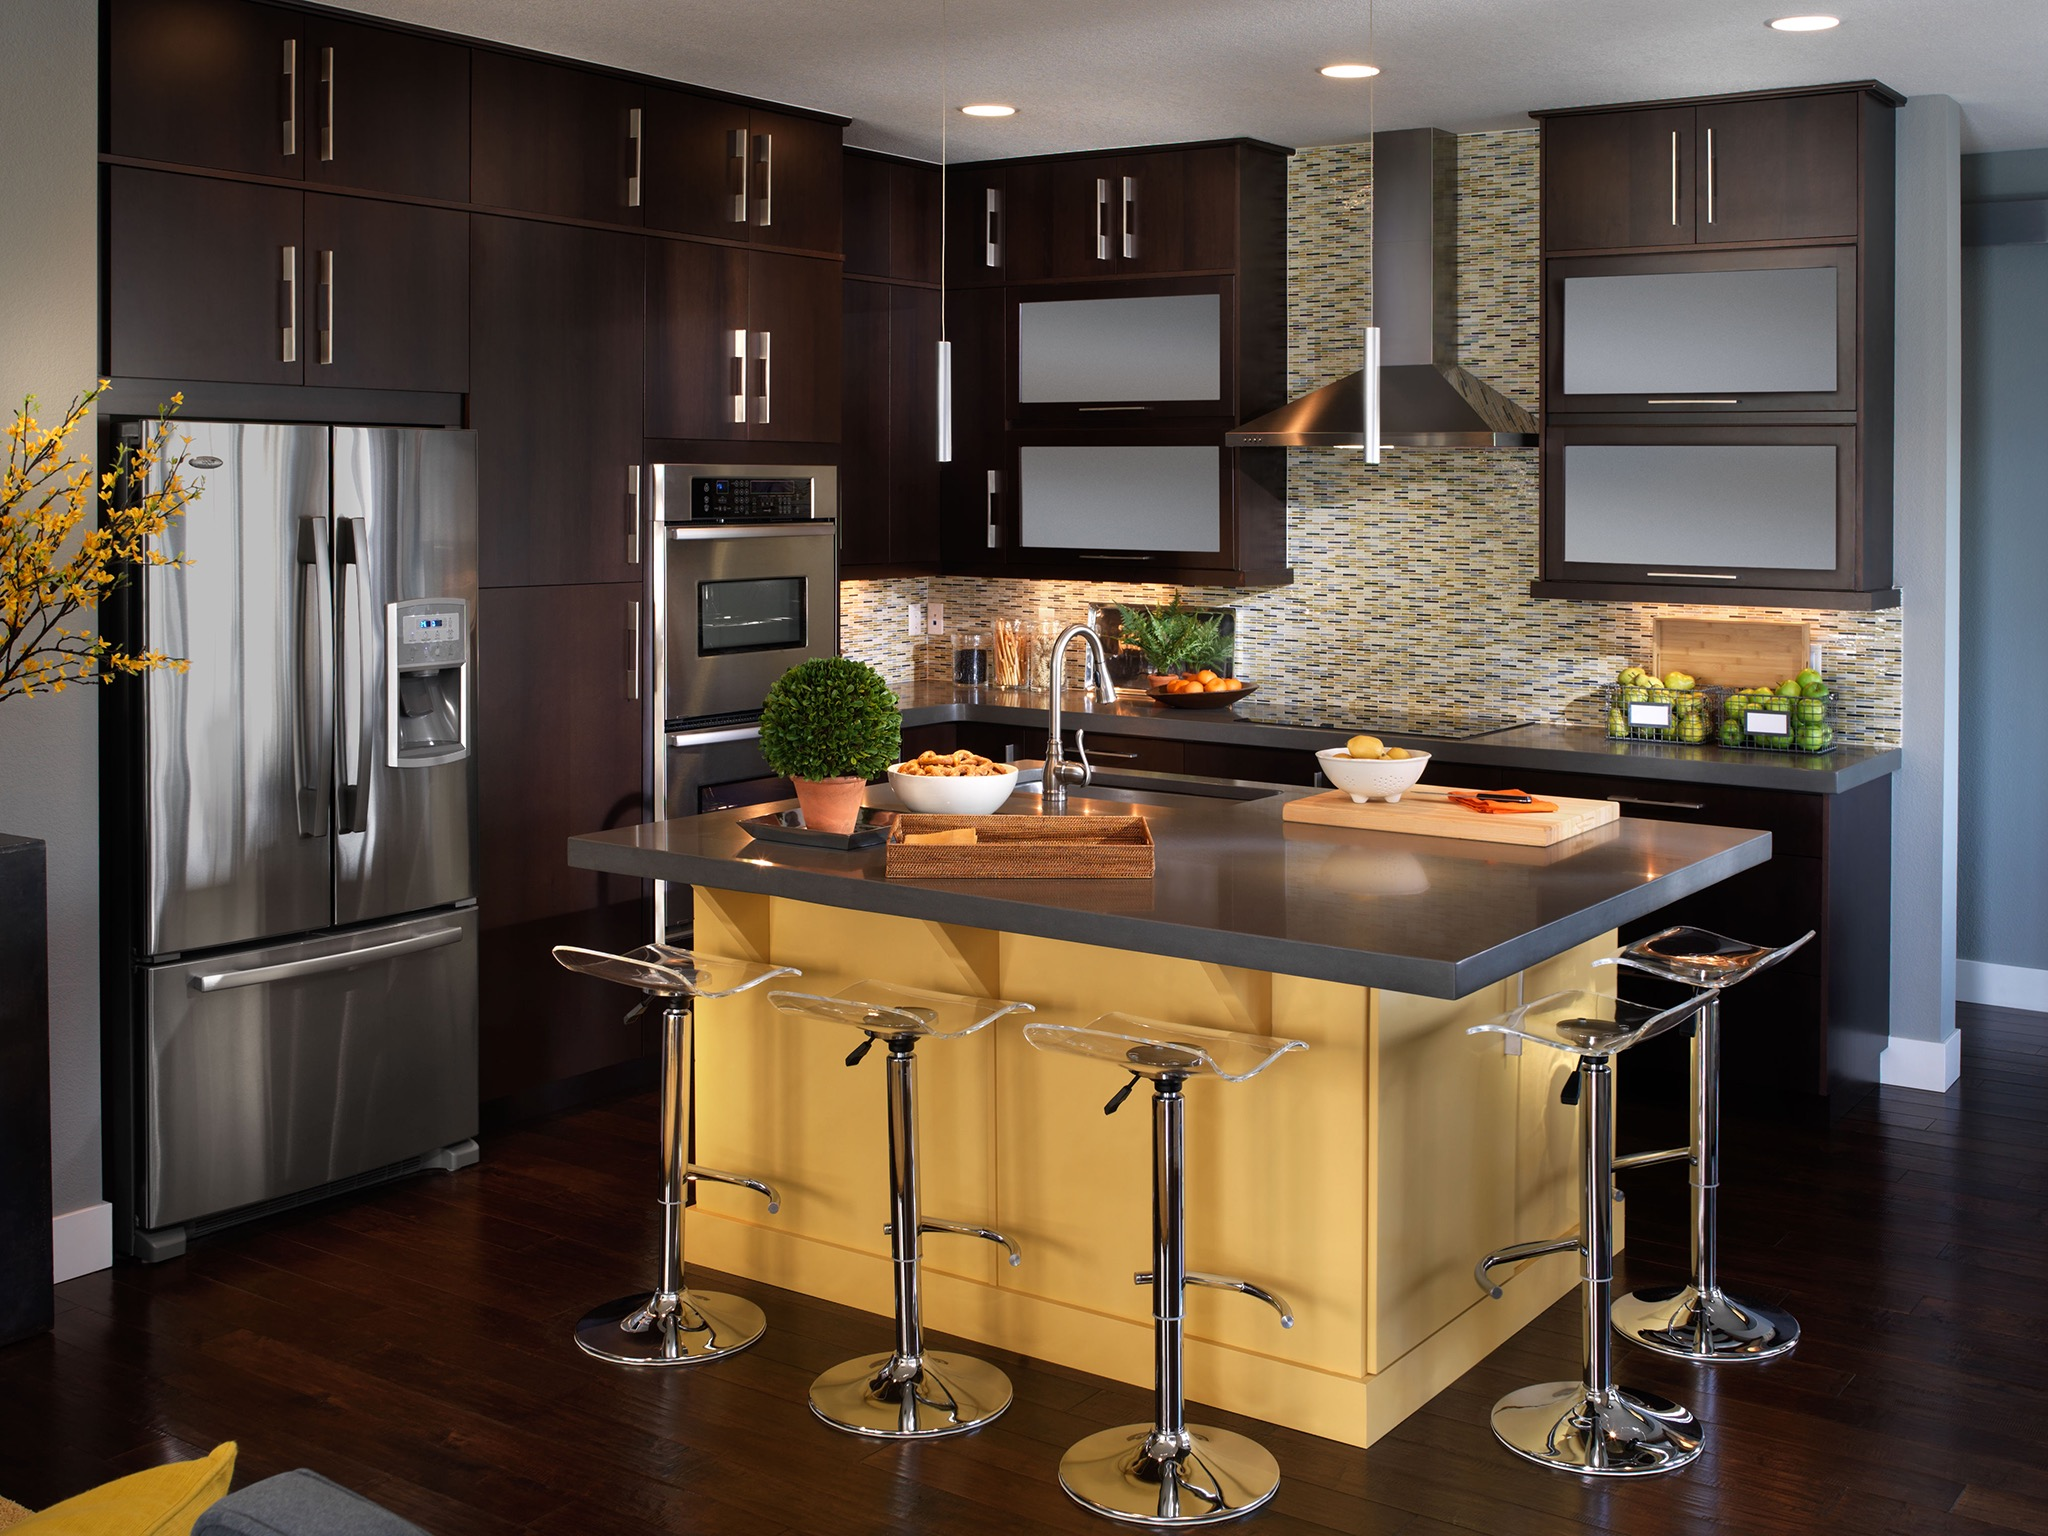 Dark Cabinetry For Contemporary Kitchen (View 7 of 18)